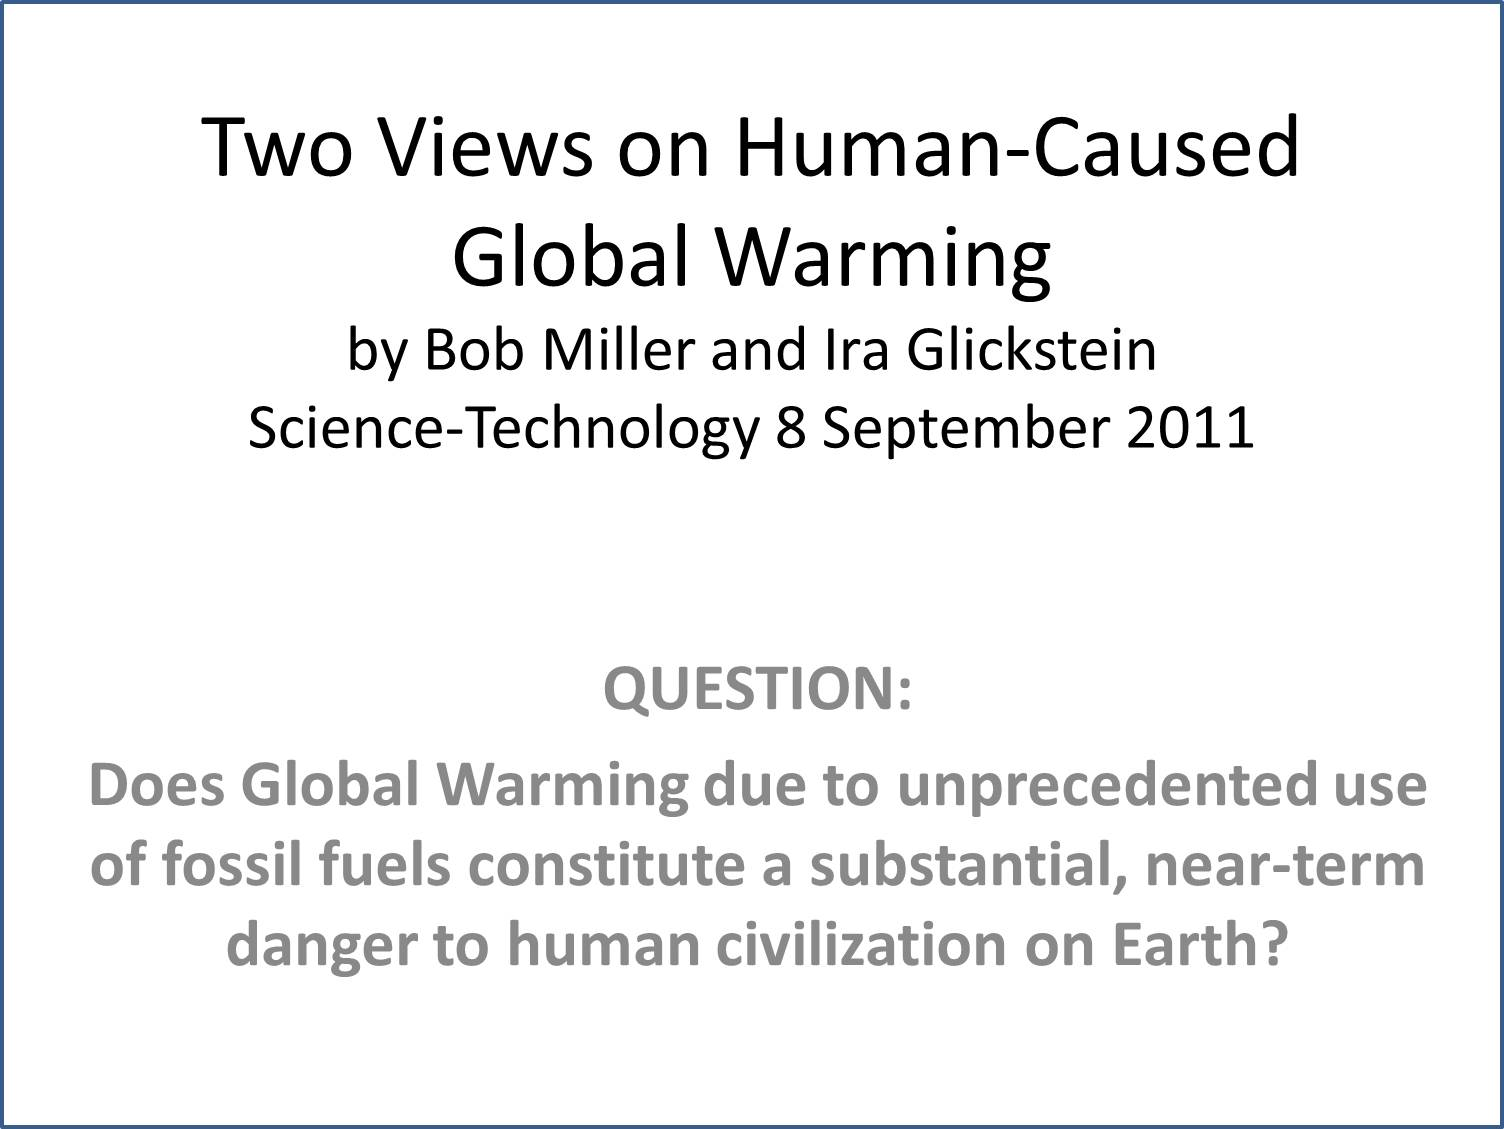 Human activity vs natural cycle. climate change debate. help please !?